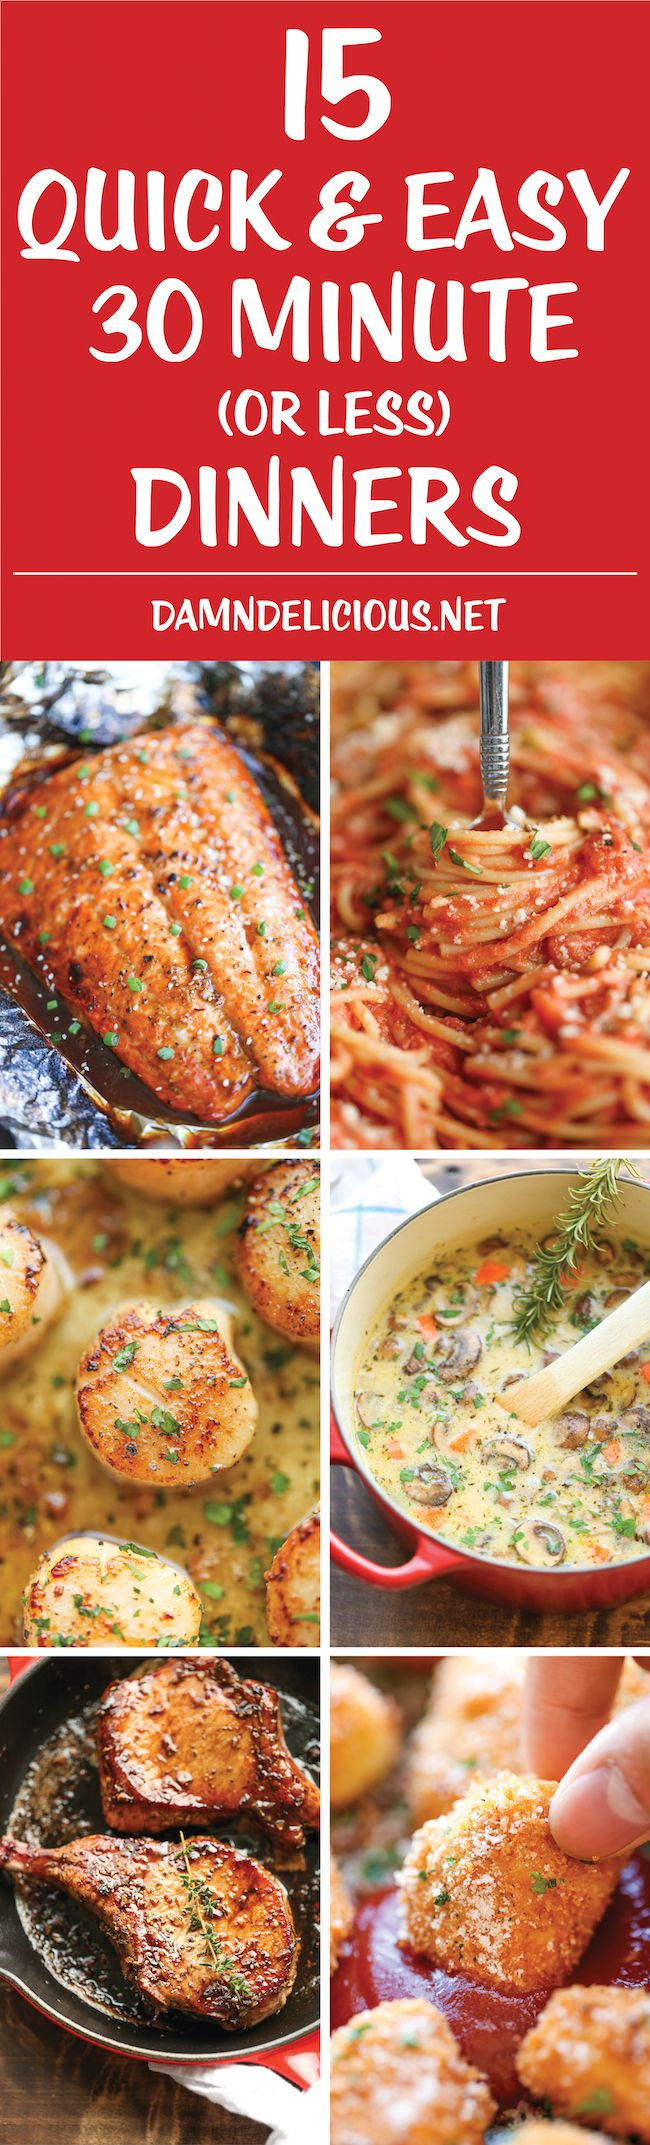 15 Quick and Easy 30 Minute Dinners - Dinner can be on the table in 30 min from start to finish with these fast, quick, easy, and delicious recipes!